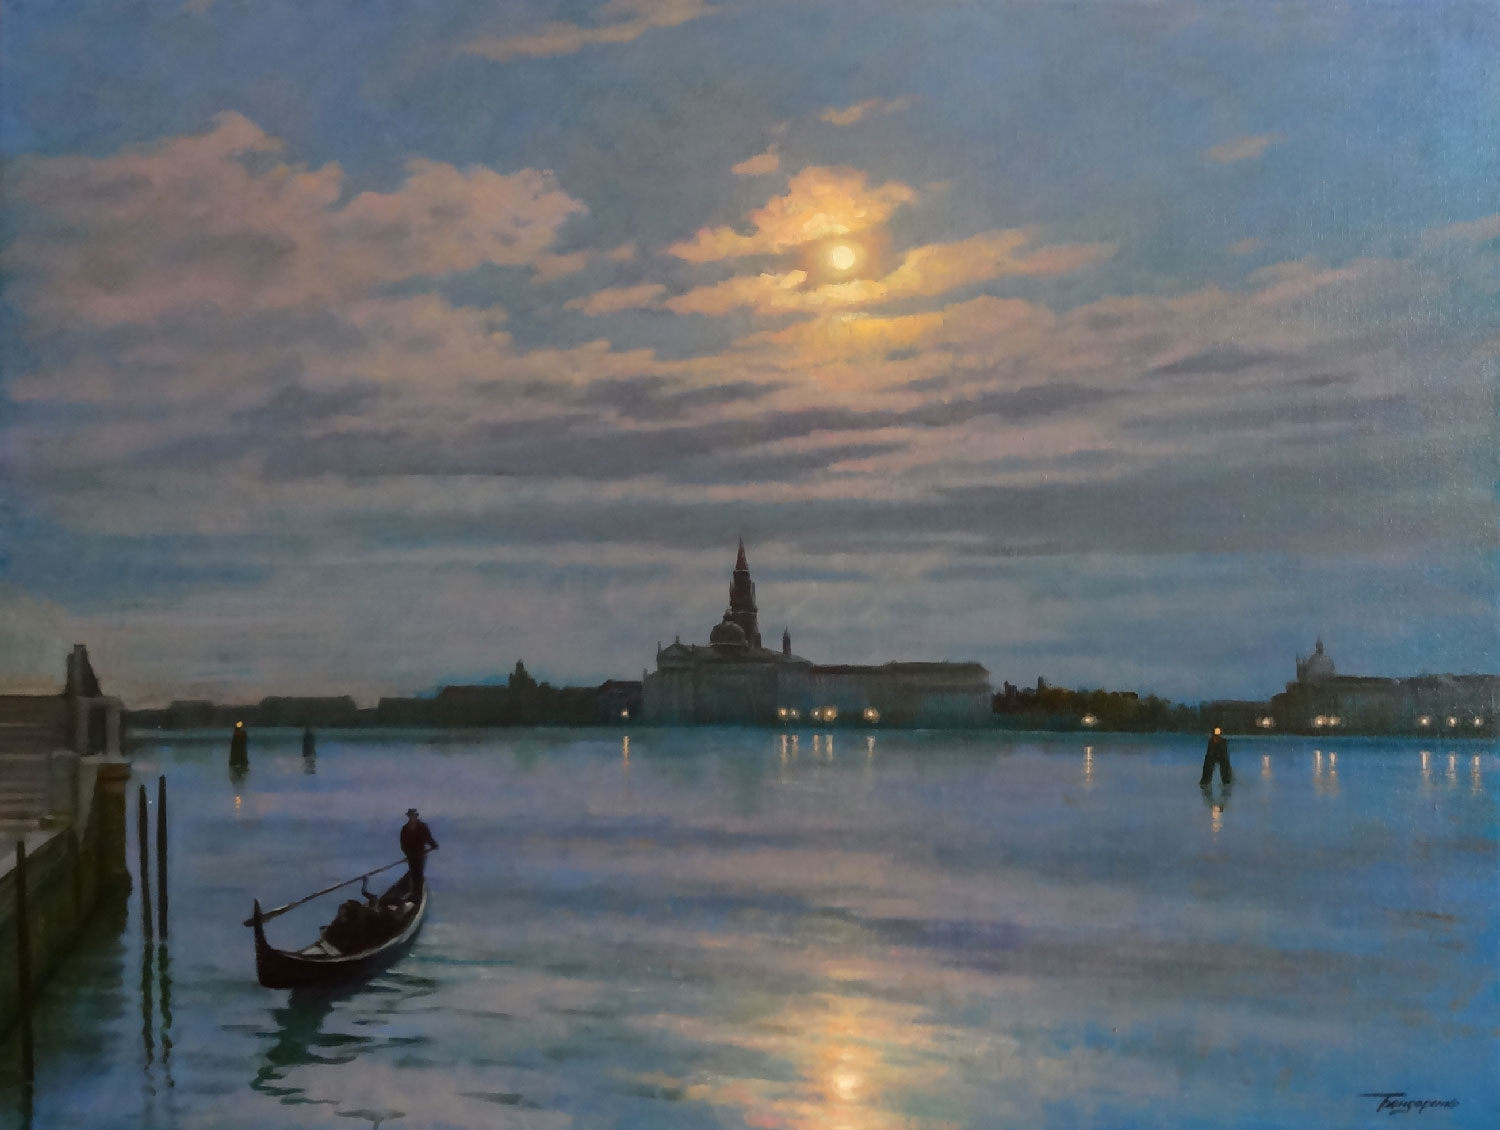 bondarenko_moonlight.jpg